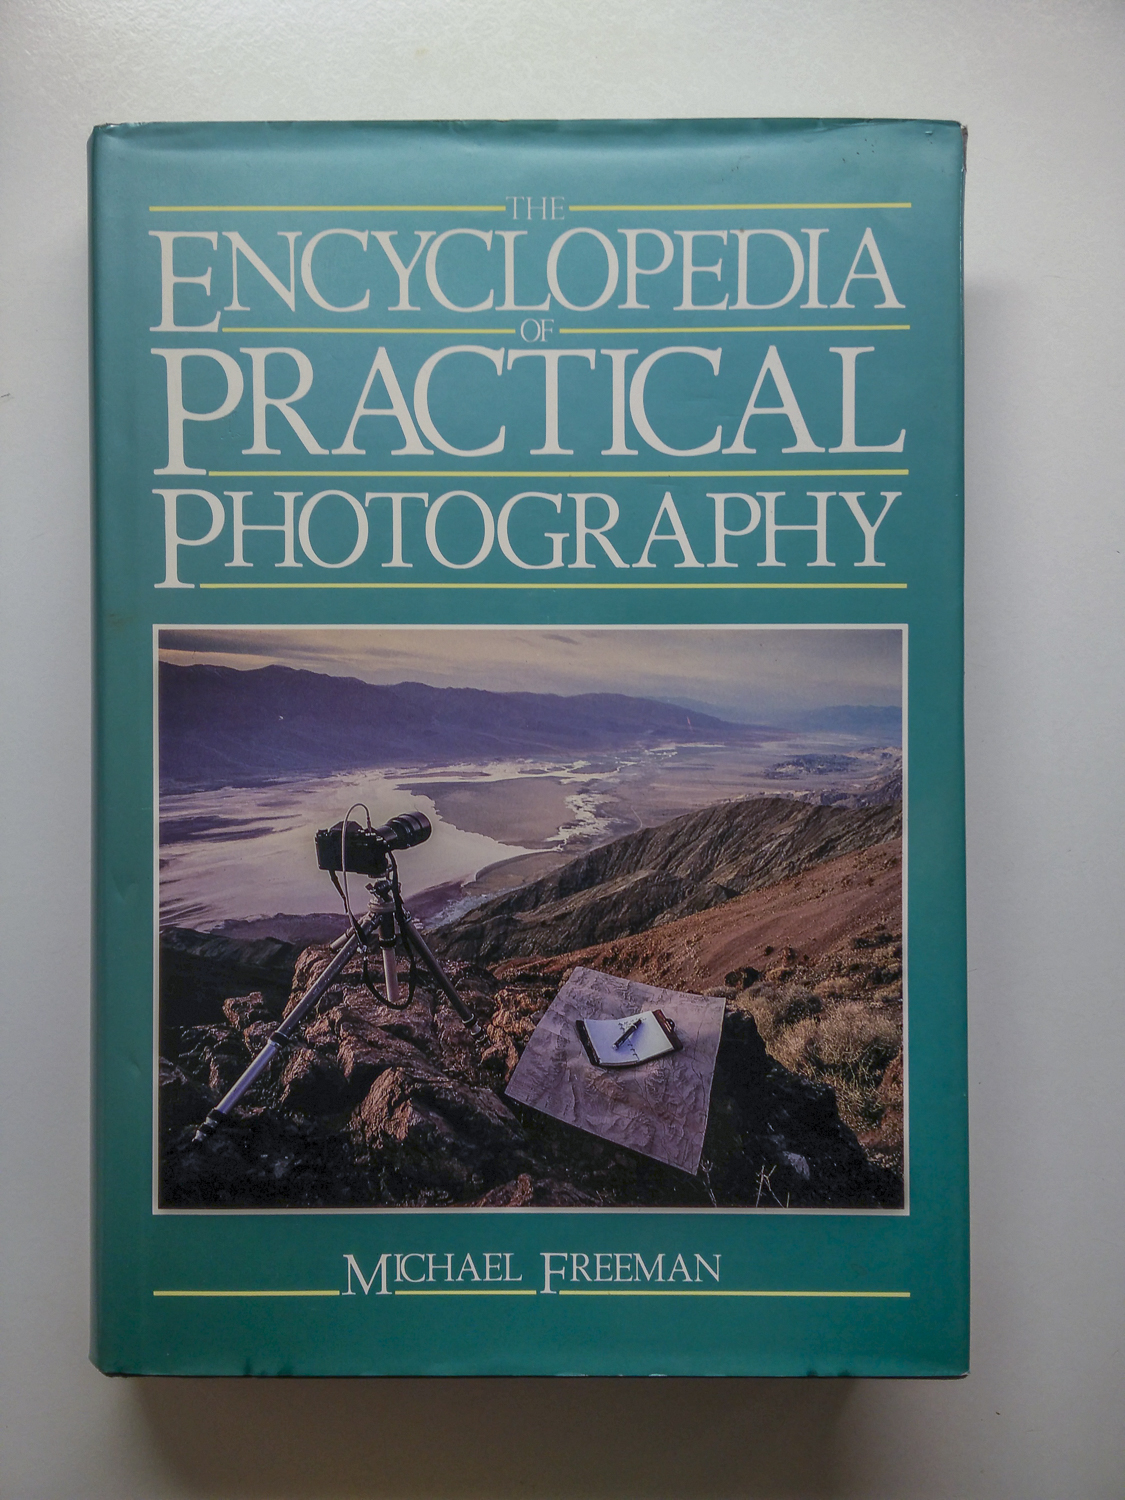 Sælges: Michael Freemann: The Encyclopedia of Practical Photography, Tiger Books International, London, 1990